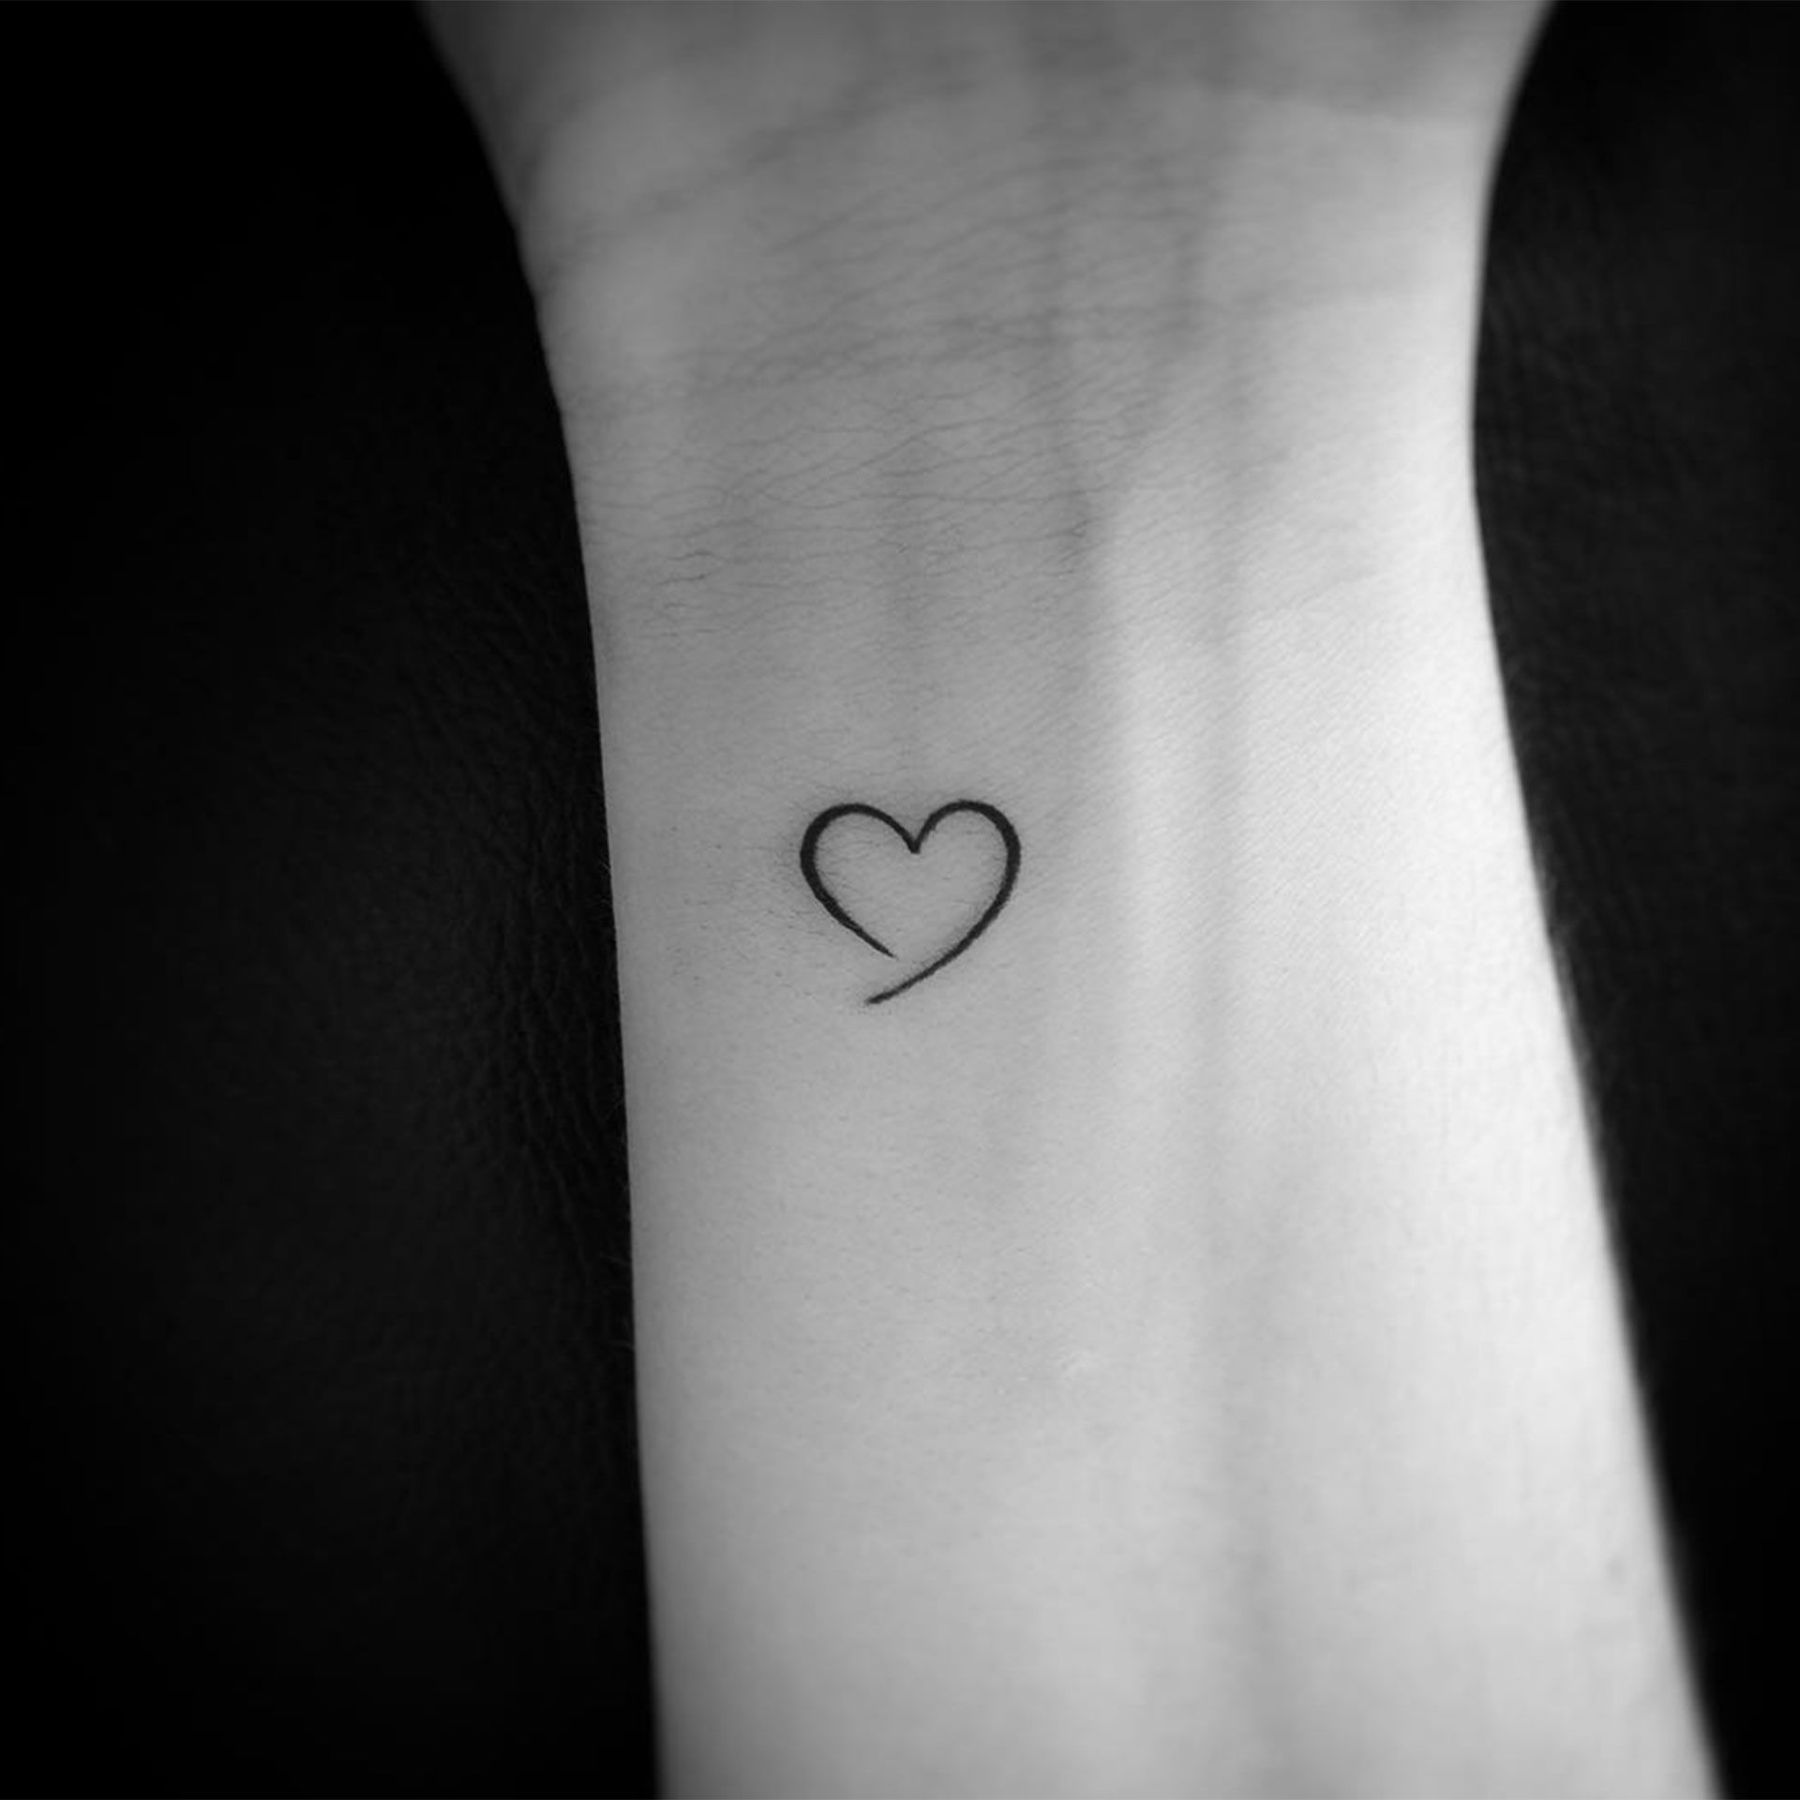 White on black tattoo ideas  cute tattoo ideas the ultimate instagram inkspiration  small